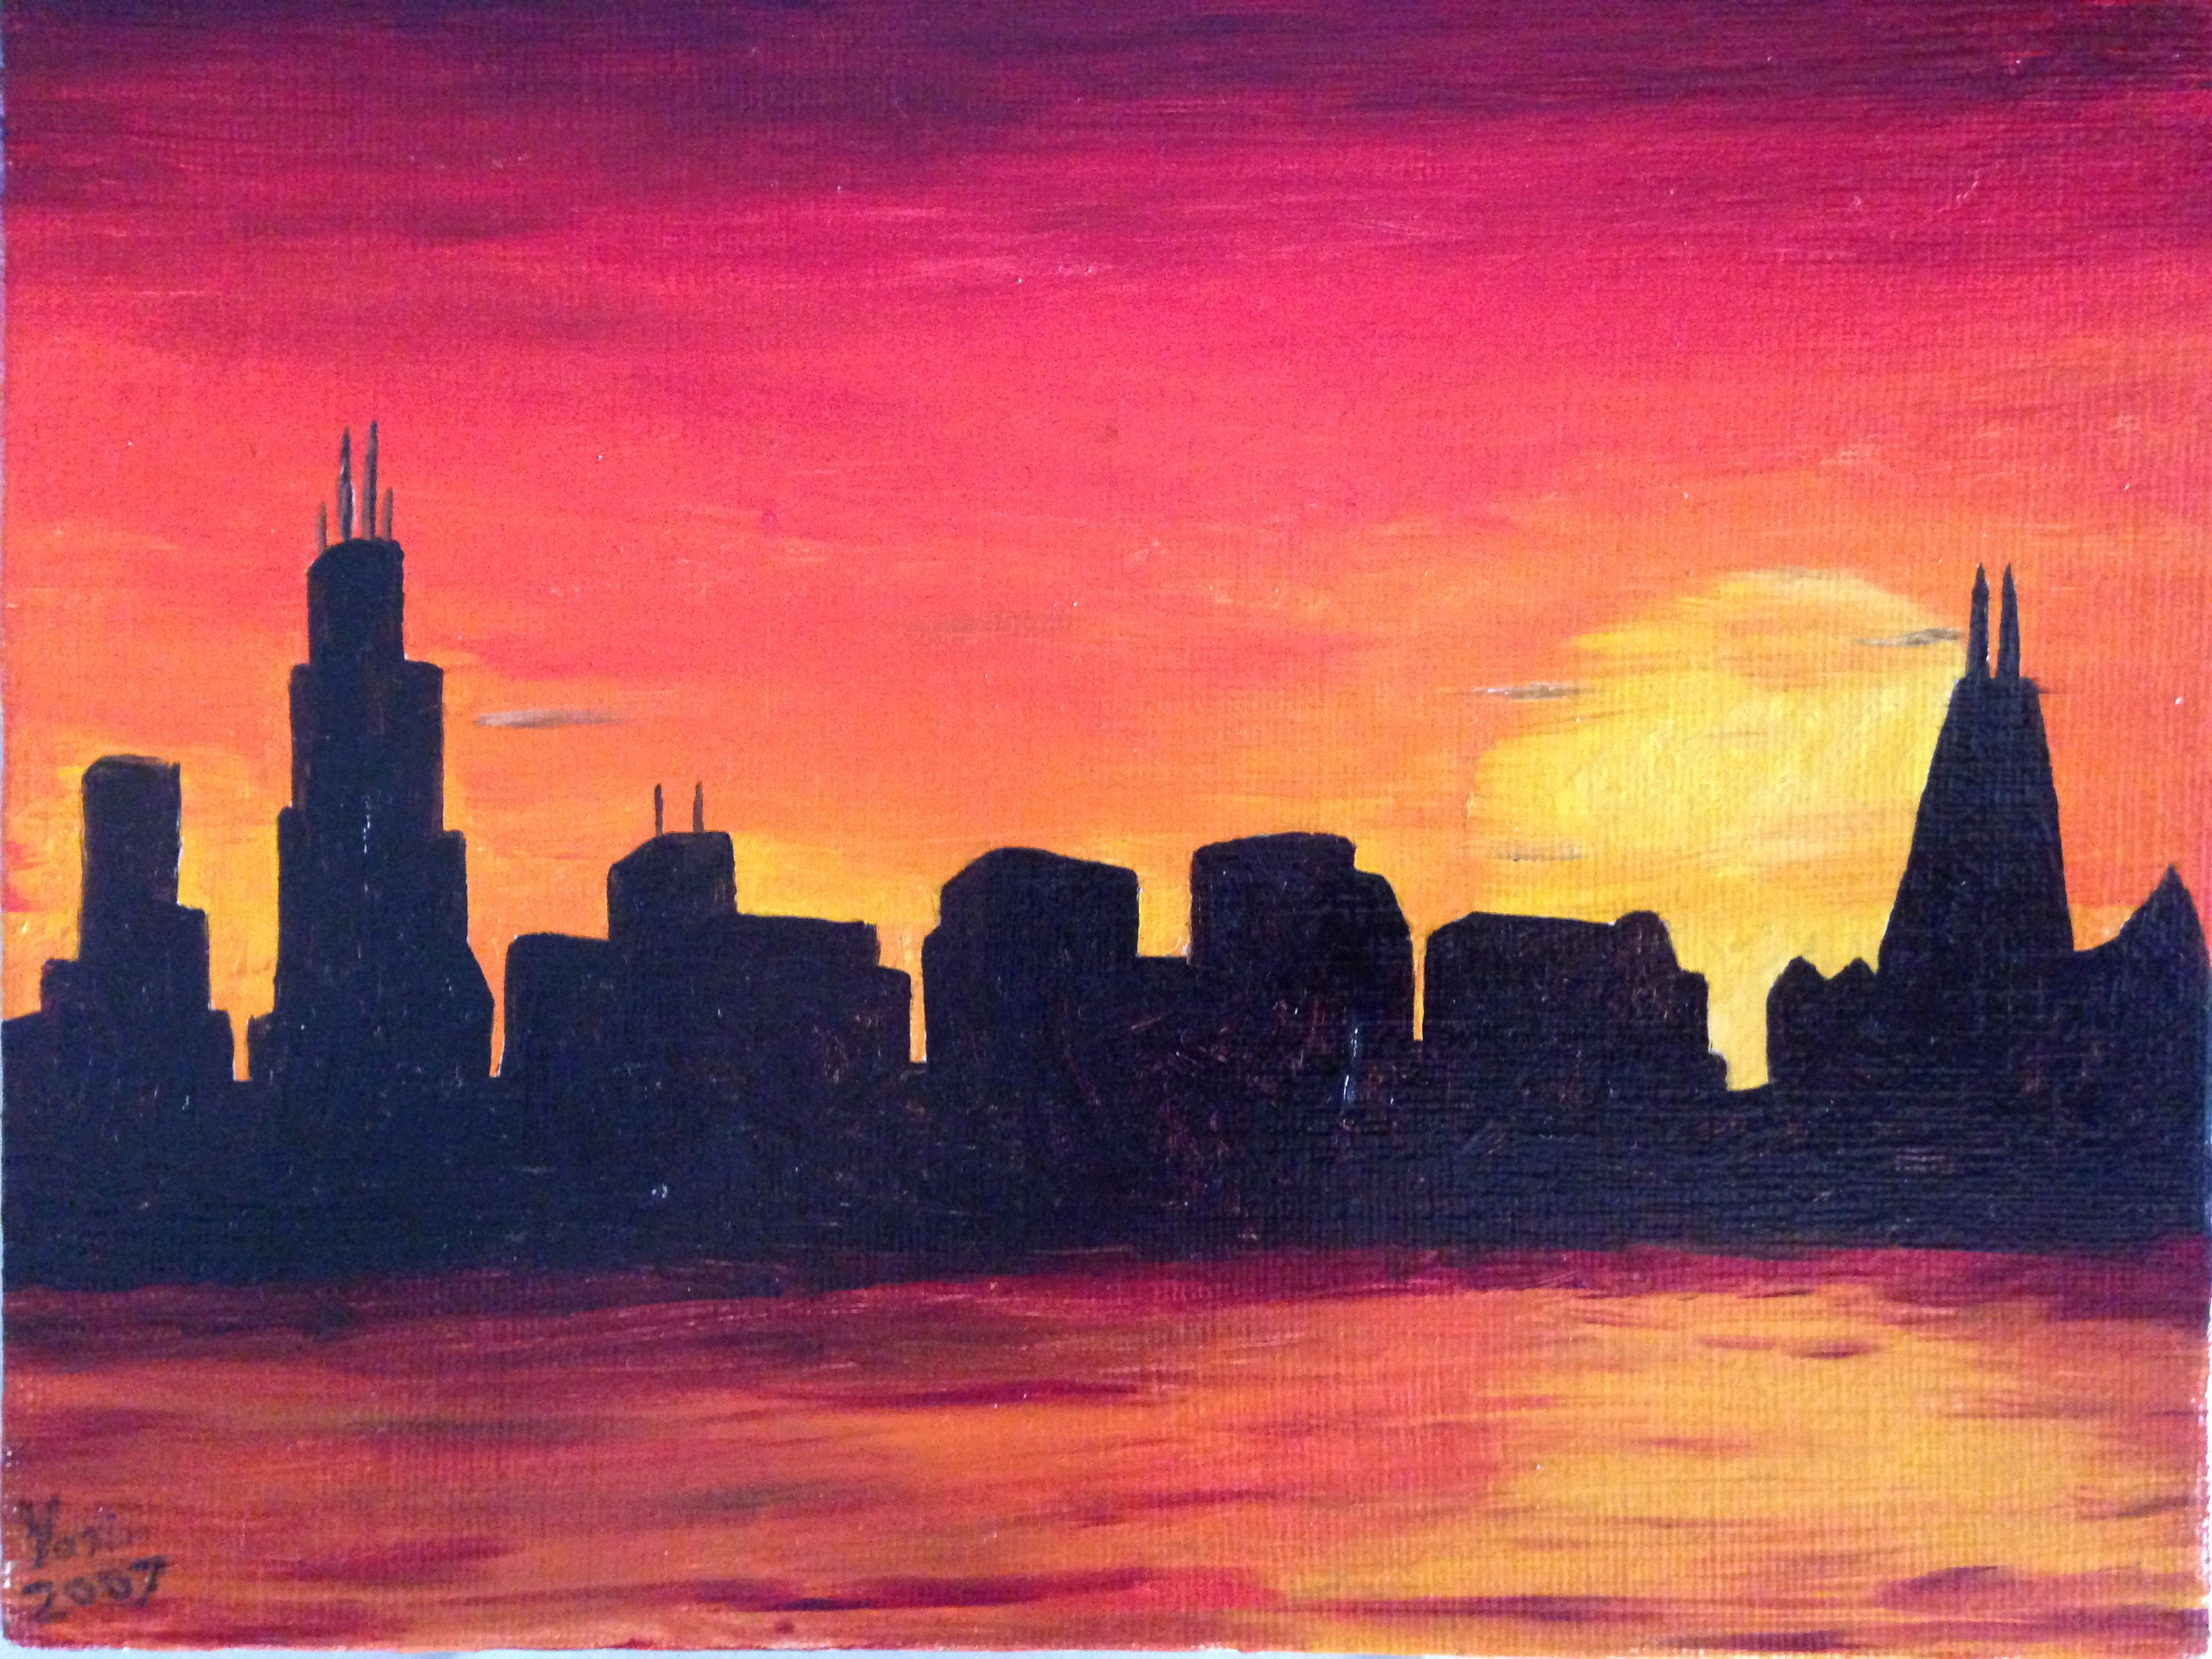 Chicago skyline at sunset by local cary il artist vasili